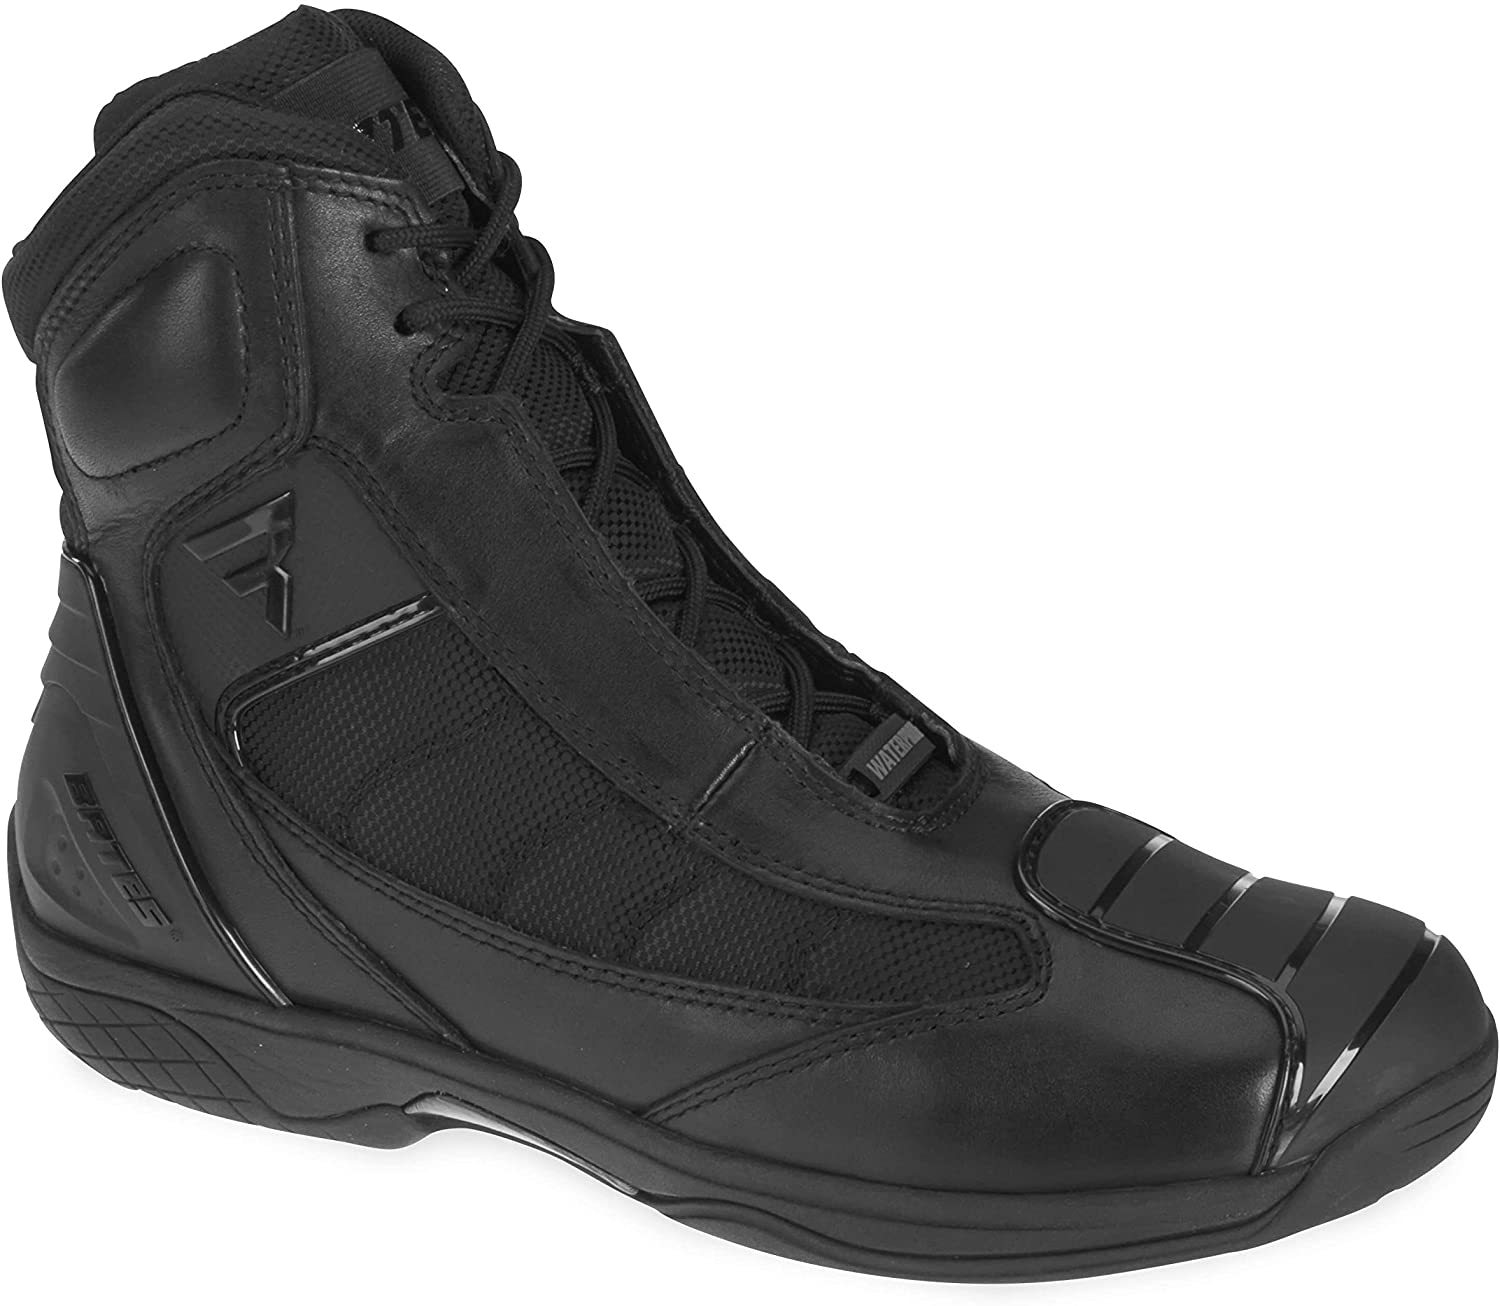 Bates Beltline Performance Men's Motorcycle Boots (Black, Size 10.5)